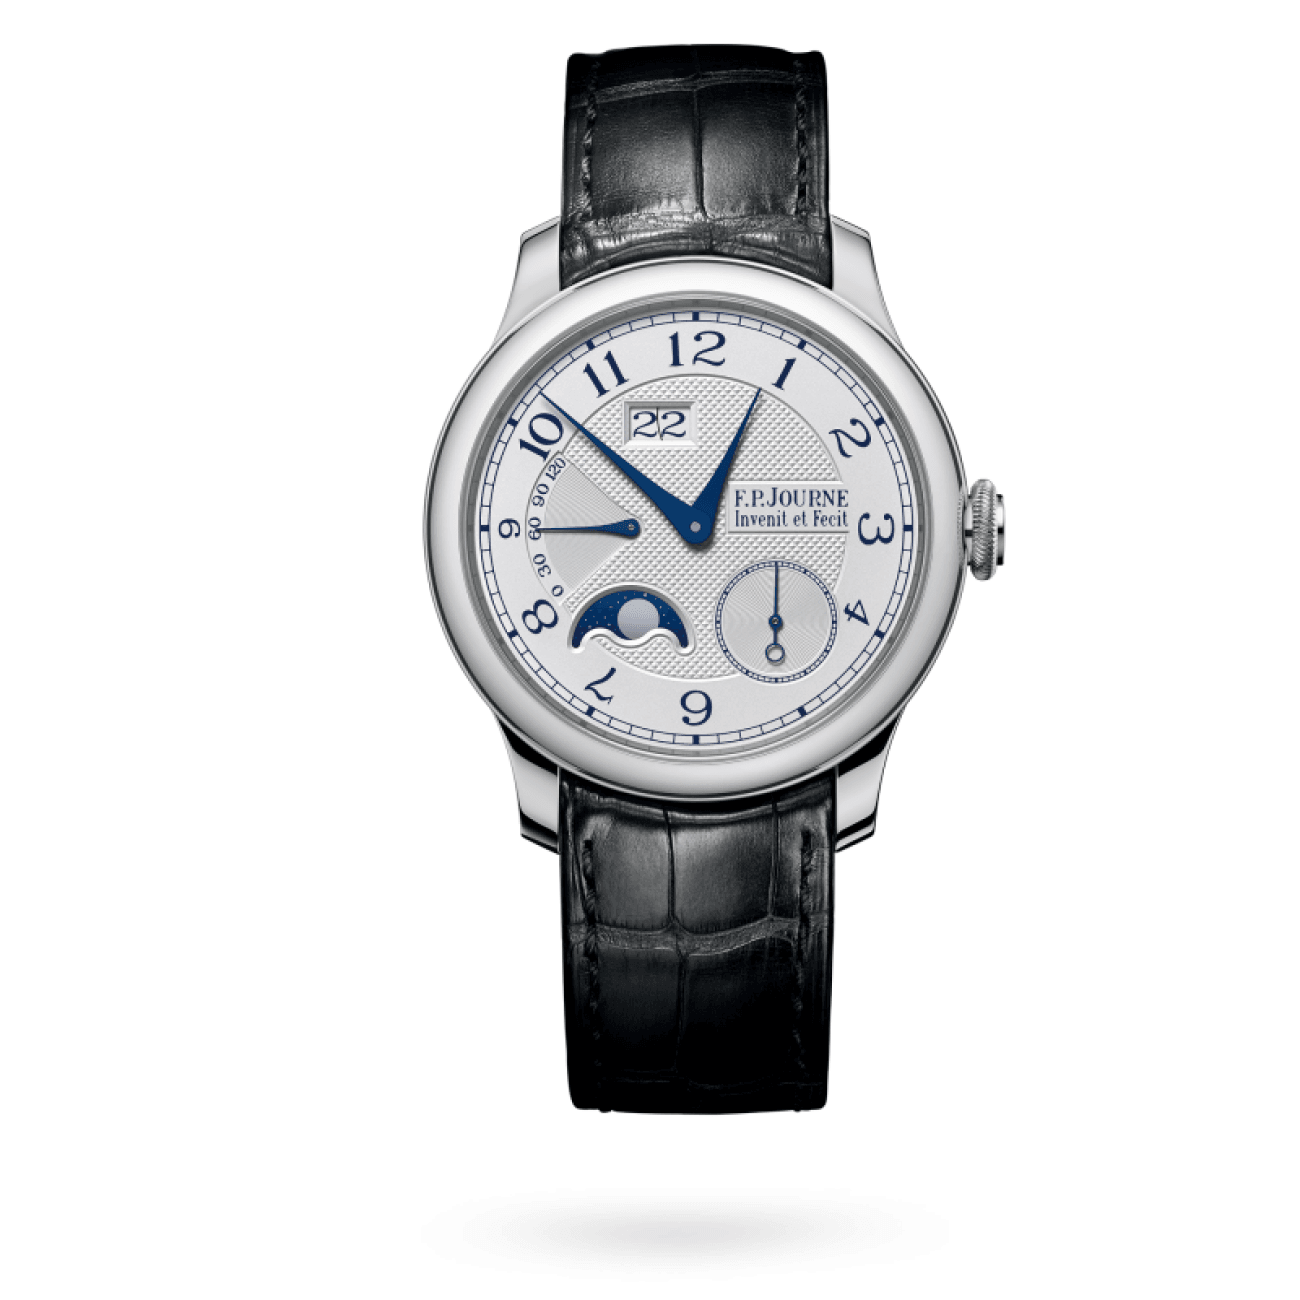 F.P. Journe Watches - Octa Automatique Lune Calibre 1300.3 | Manfredi Jewels